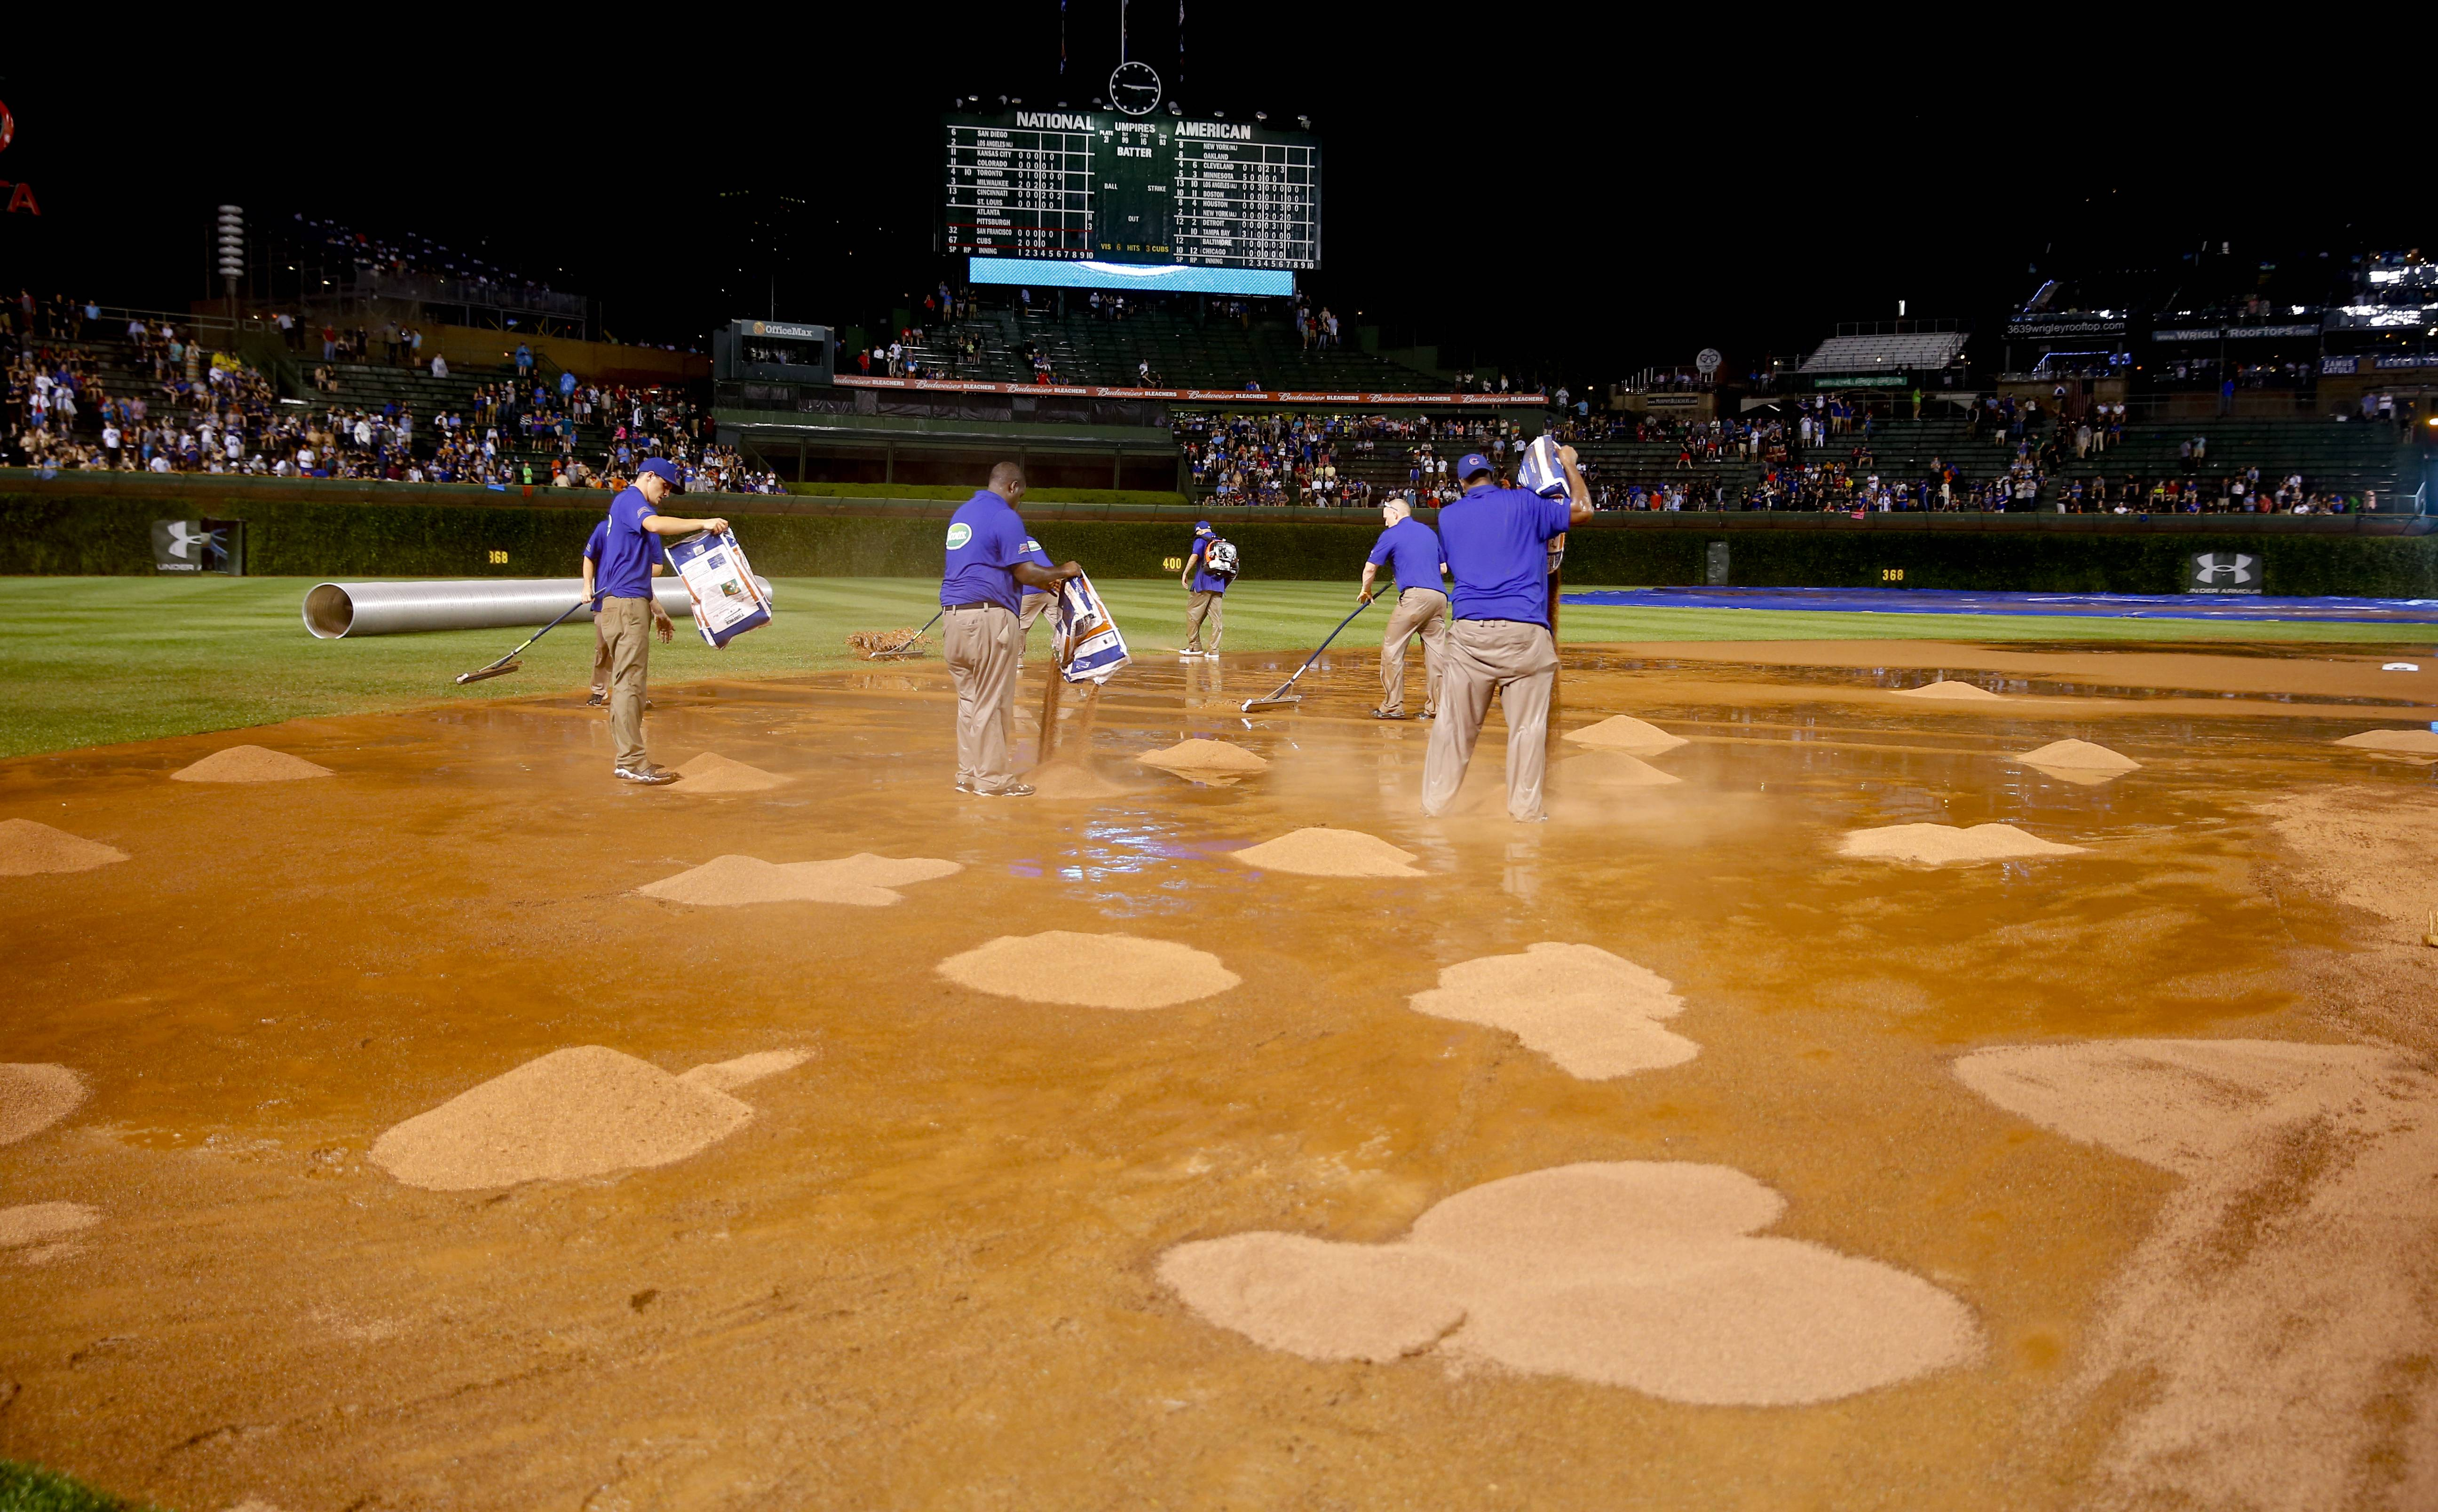 The grounds crew works on the field after a heavy rain soaked Wrigley Field during the fifth inning.